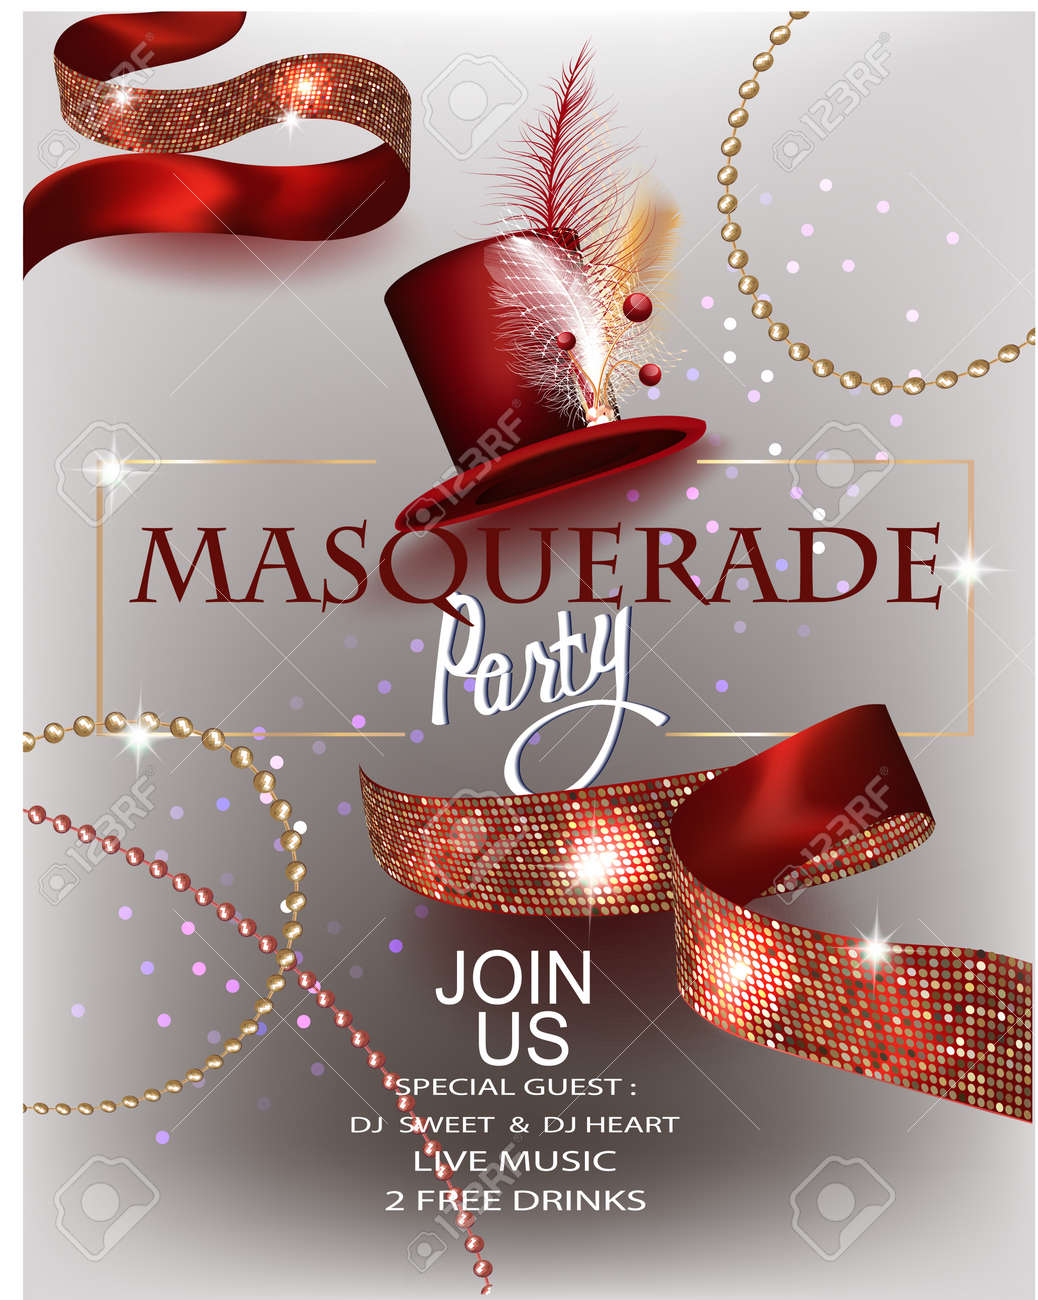 Masquerade Party Invitation Card With Hat With Decorations Beads